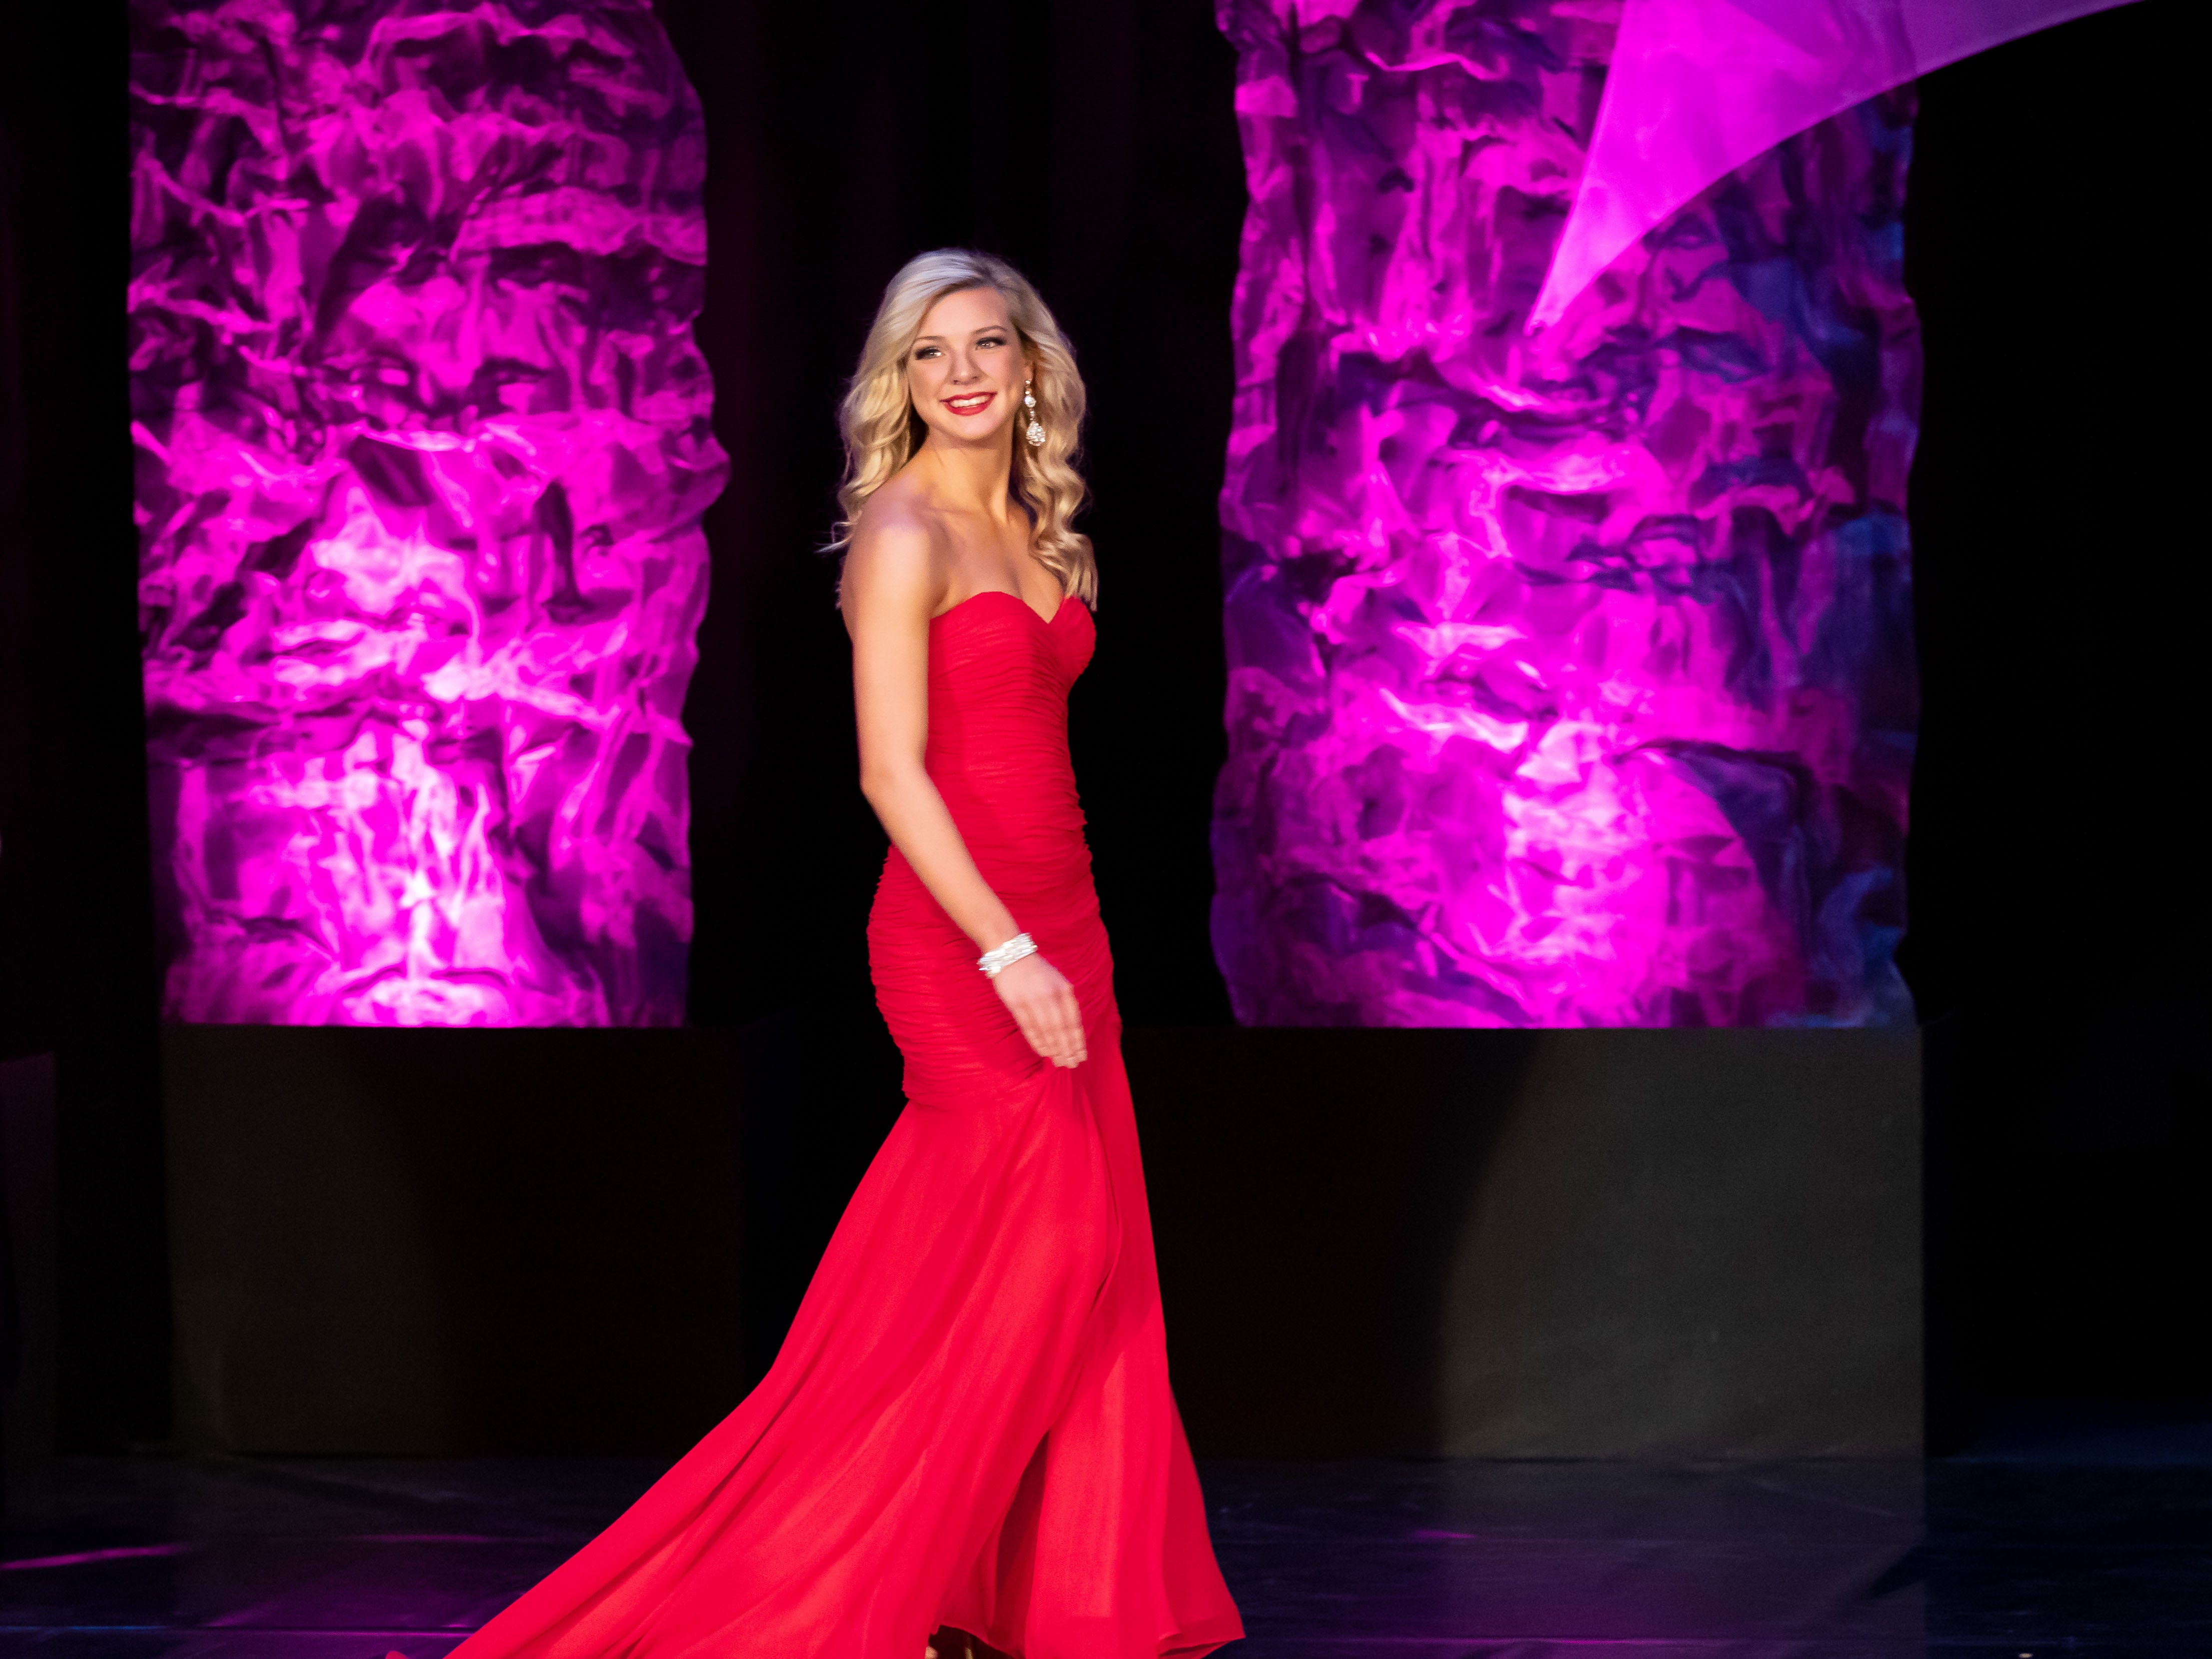 Casey Abbrederis competes in the Evening Wear competition during the 2019 Miss Wisconsin Rapids Area Scholarship Pageant on Saturday, Oct. 27, 2018, at the Performing Arts Center of Wisconsin Rapids.